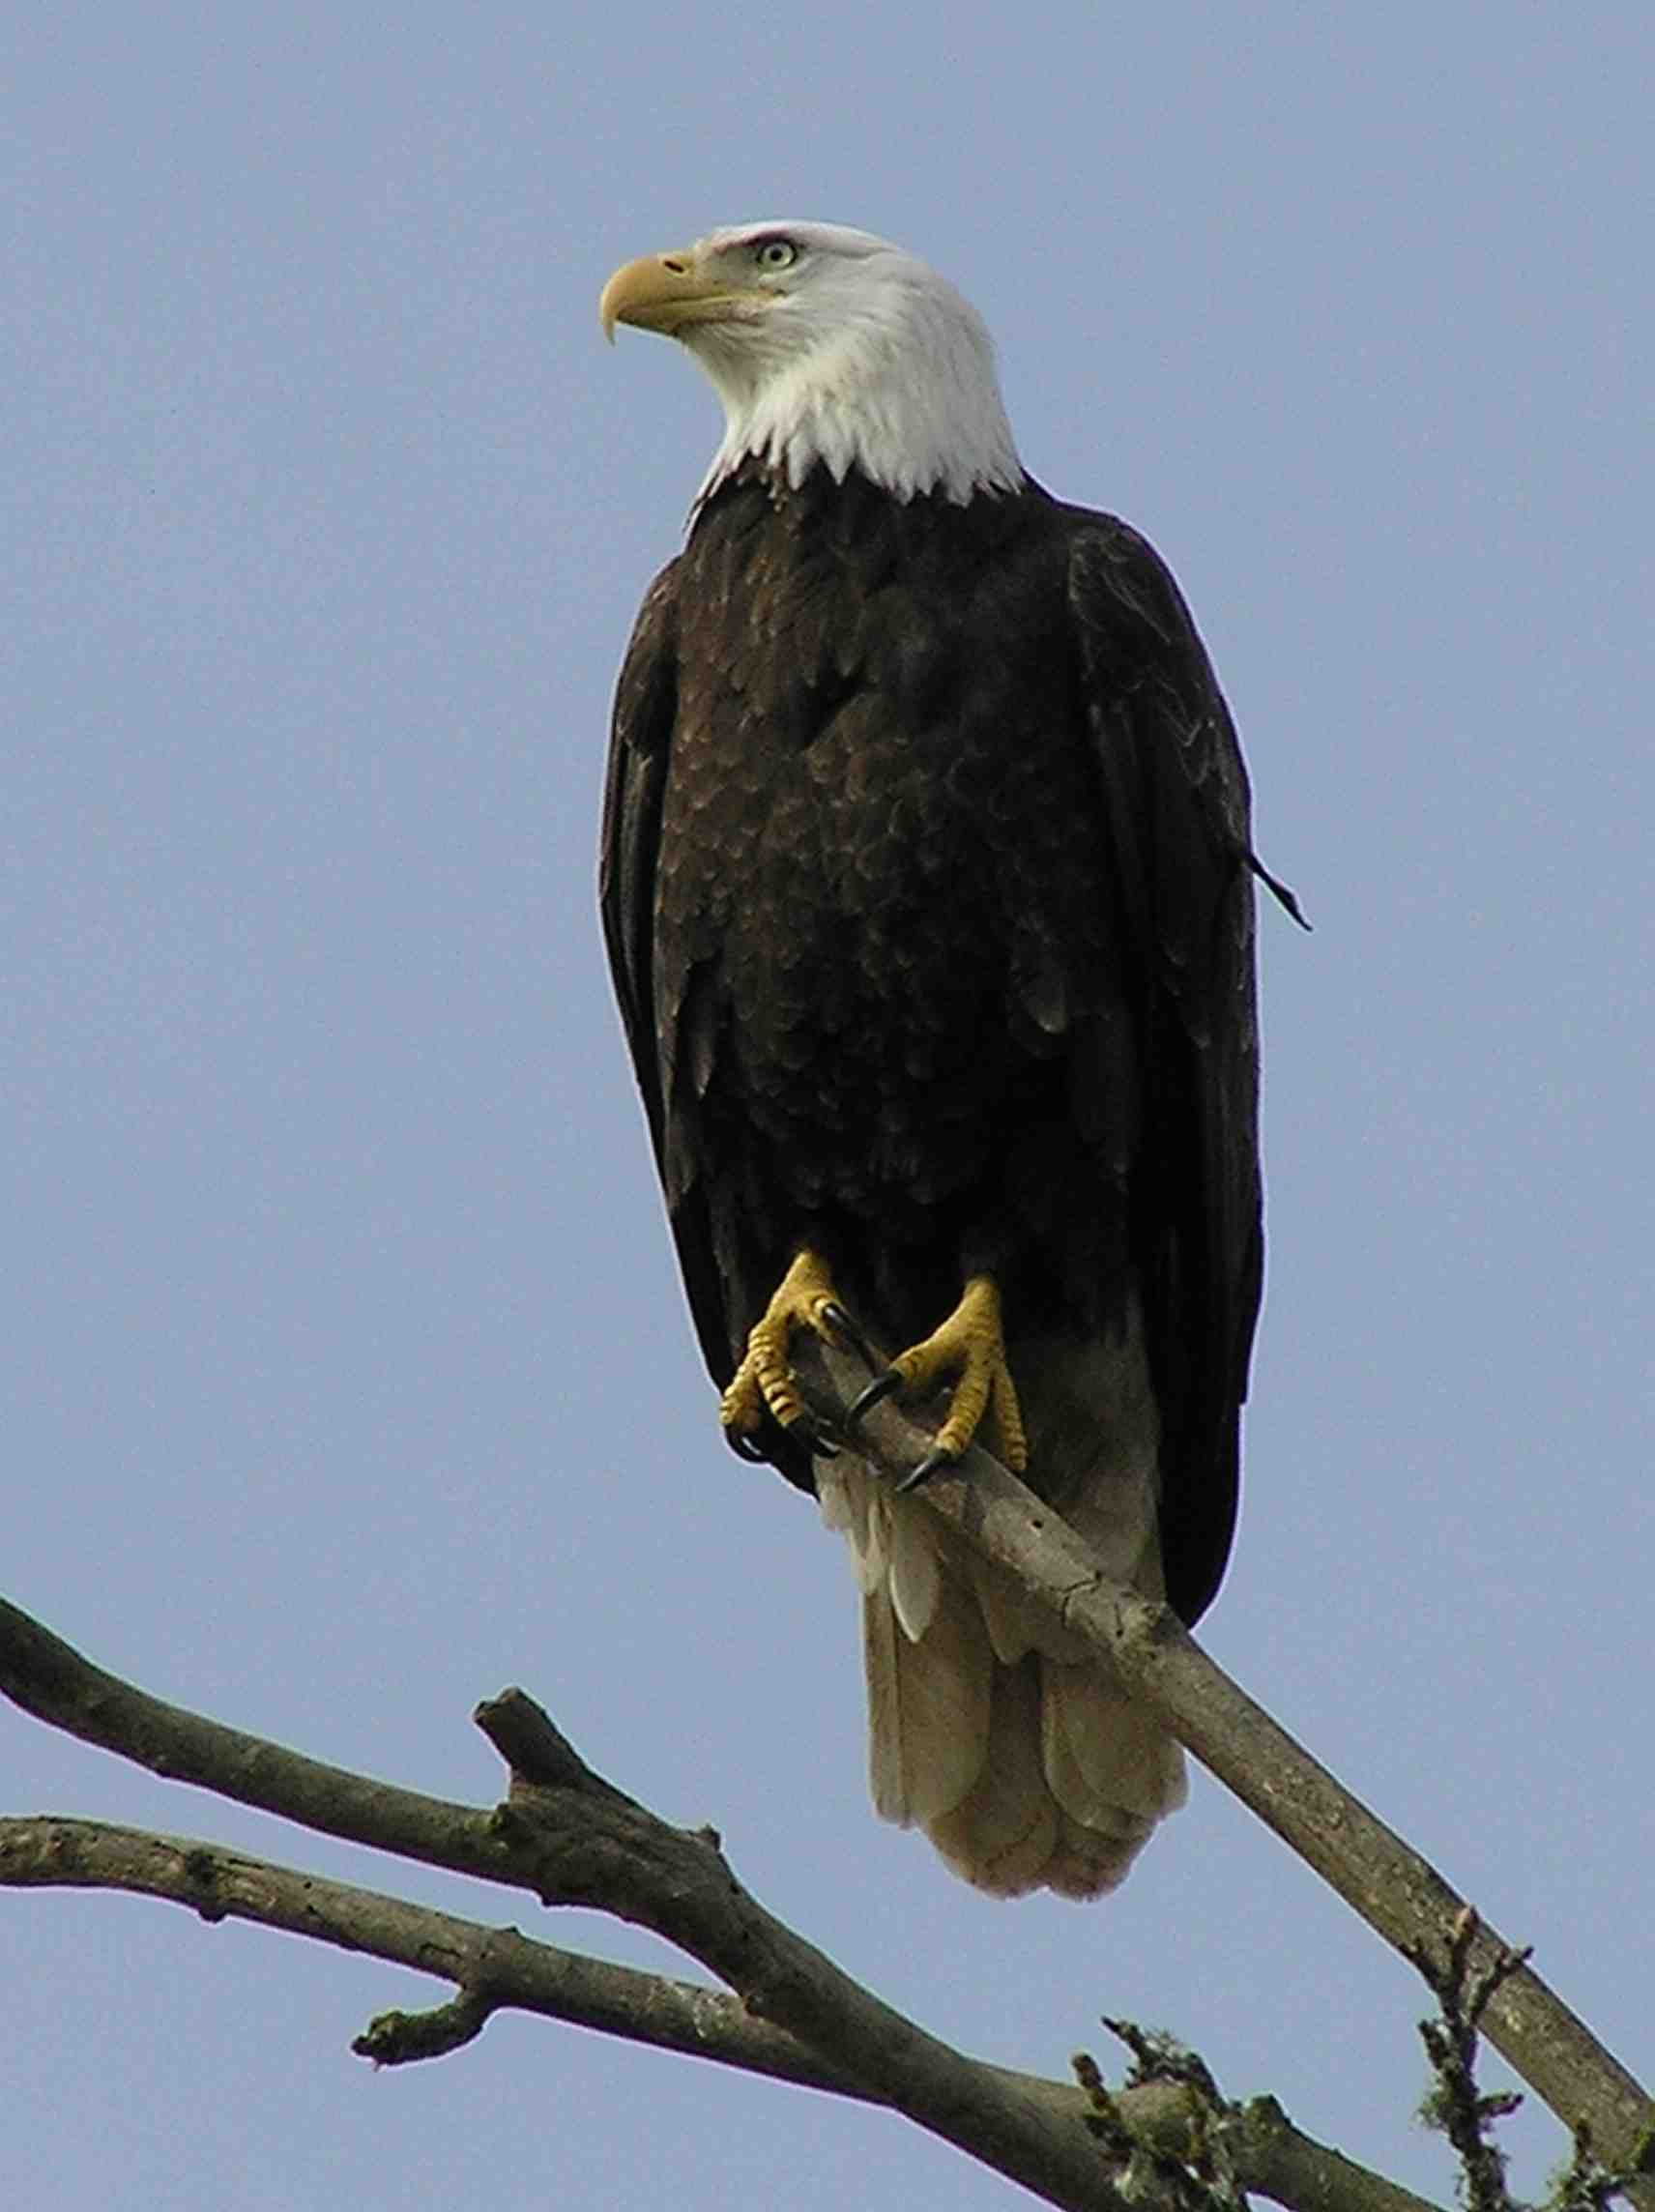 Bald Eagle photo by Kimberly M Chisholm. Bald eagles have a distinct companion call in flight when returning to the nest, among other vocalizations.